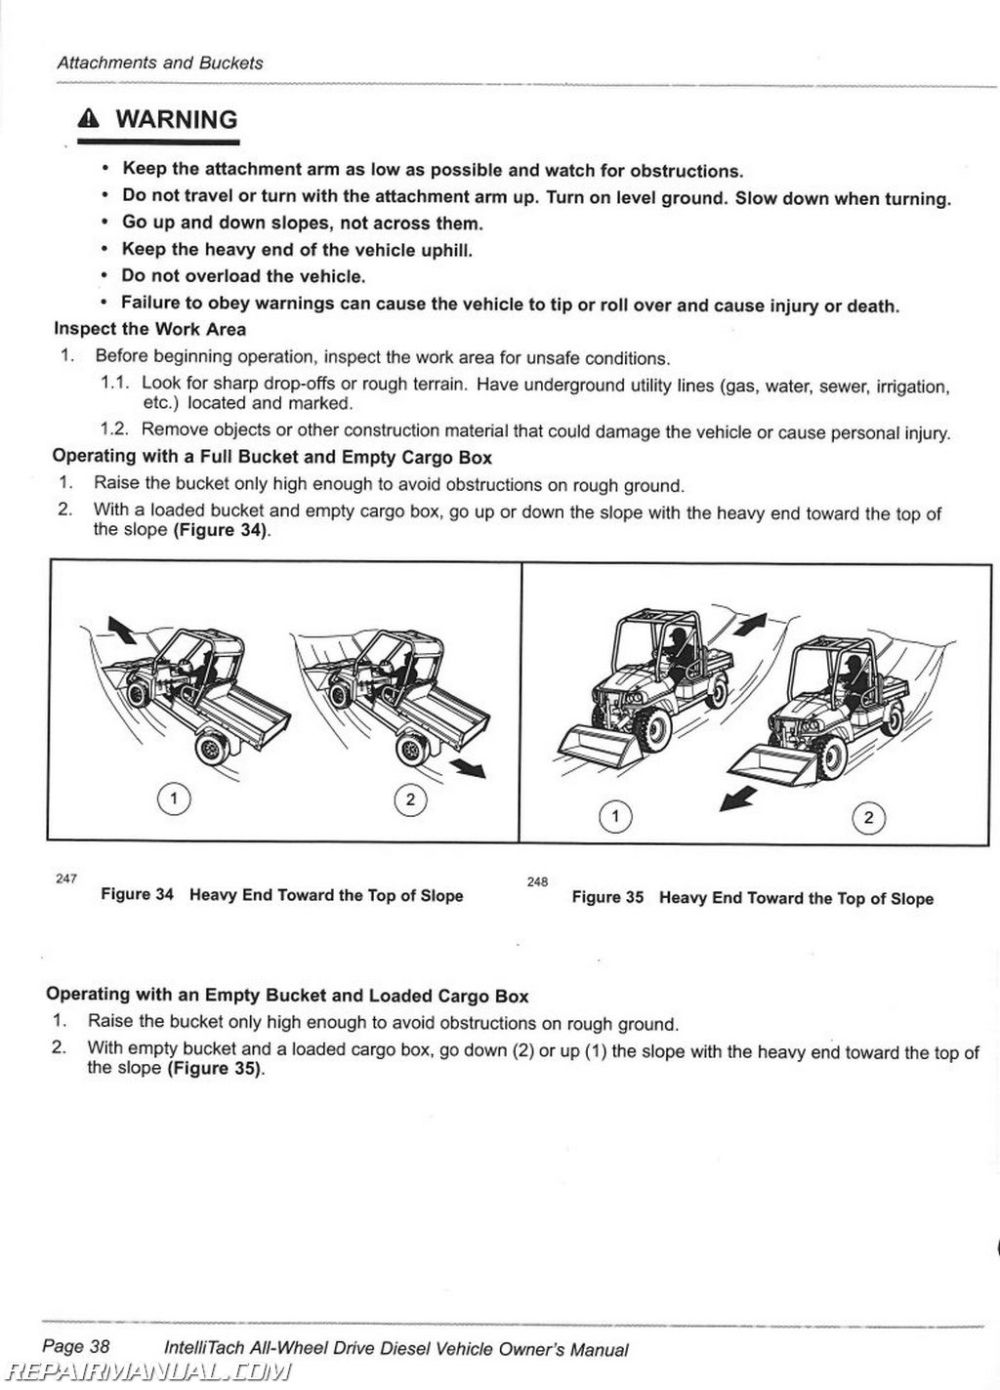 medium resolution of club car carryall 295 intellitach xrt 1550 intellitach diesel vehicle owners manual